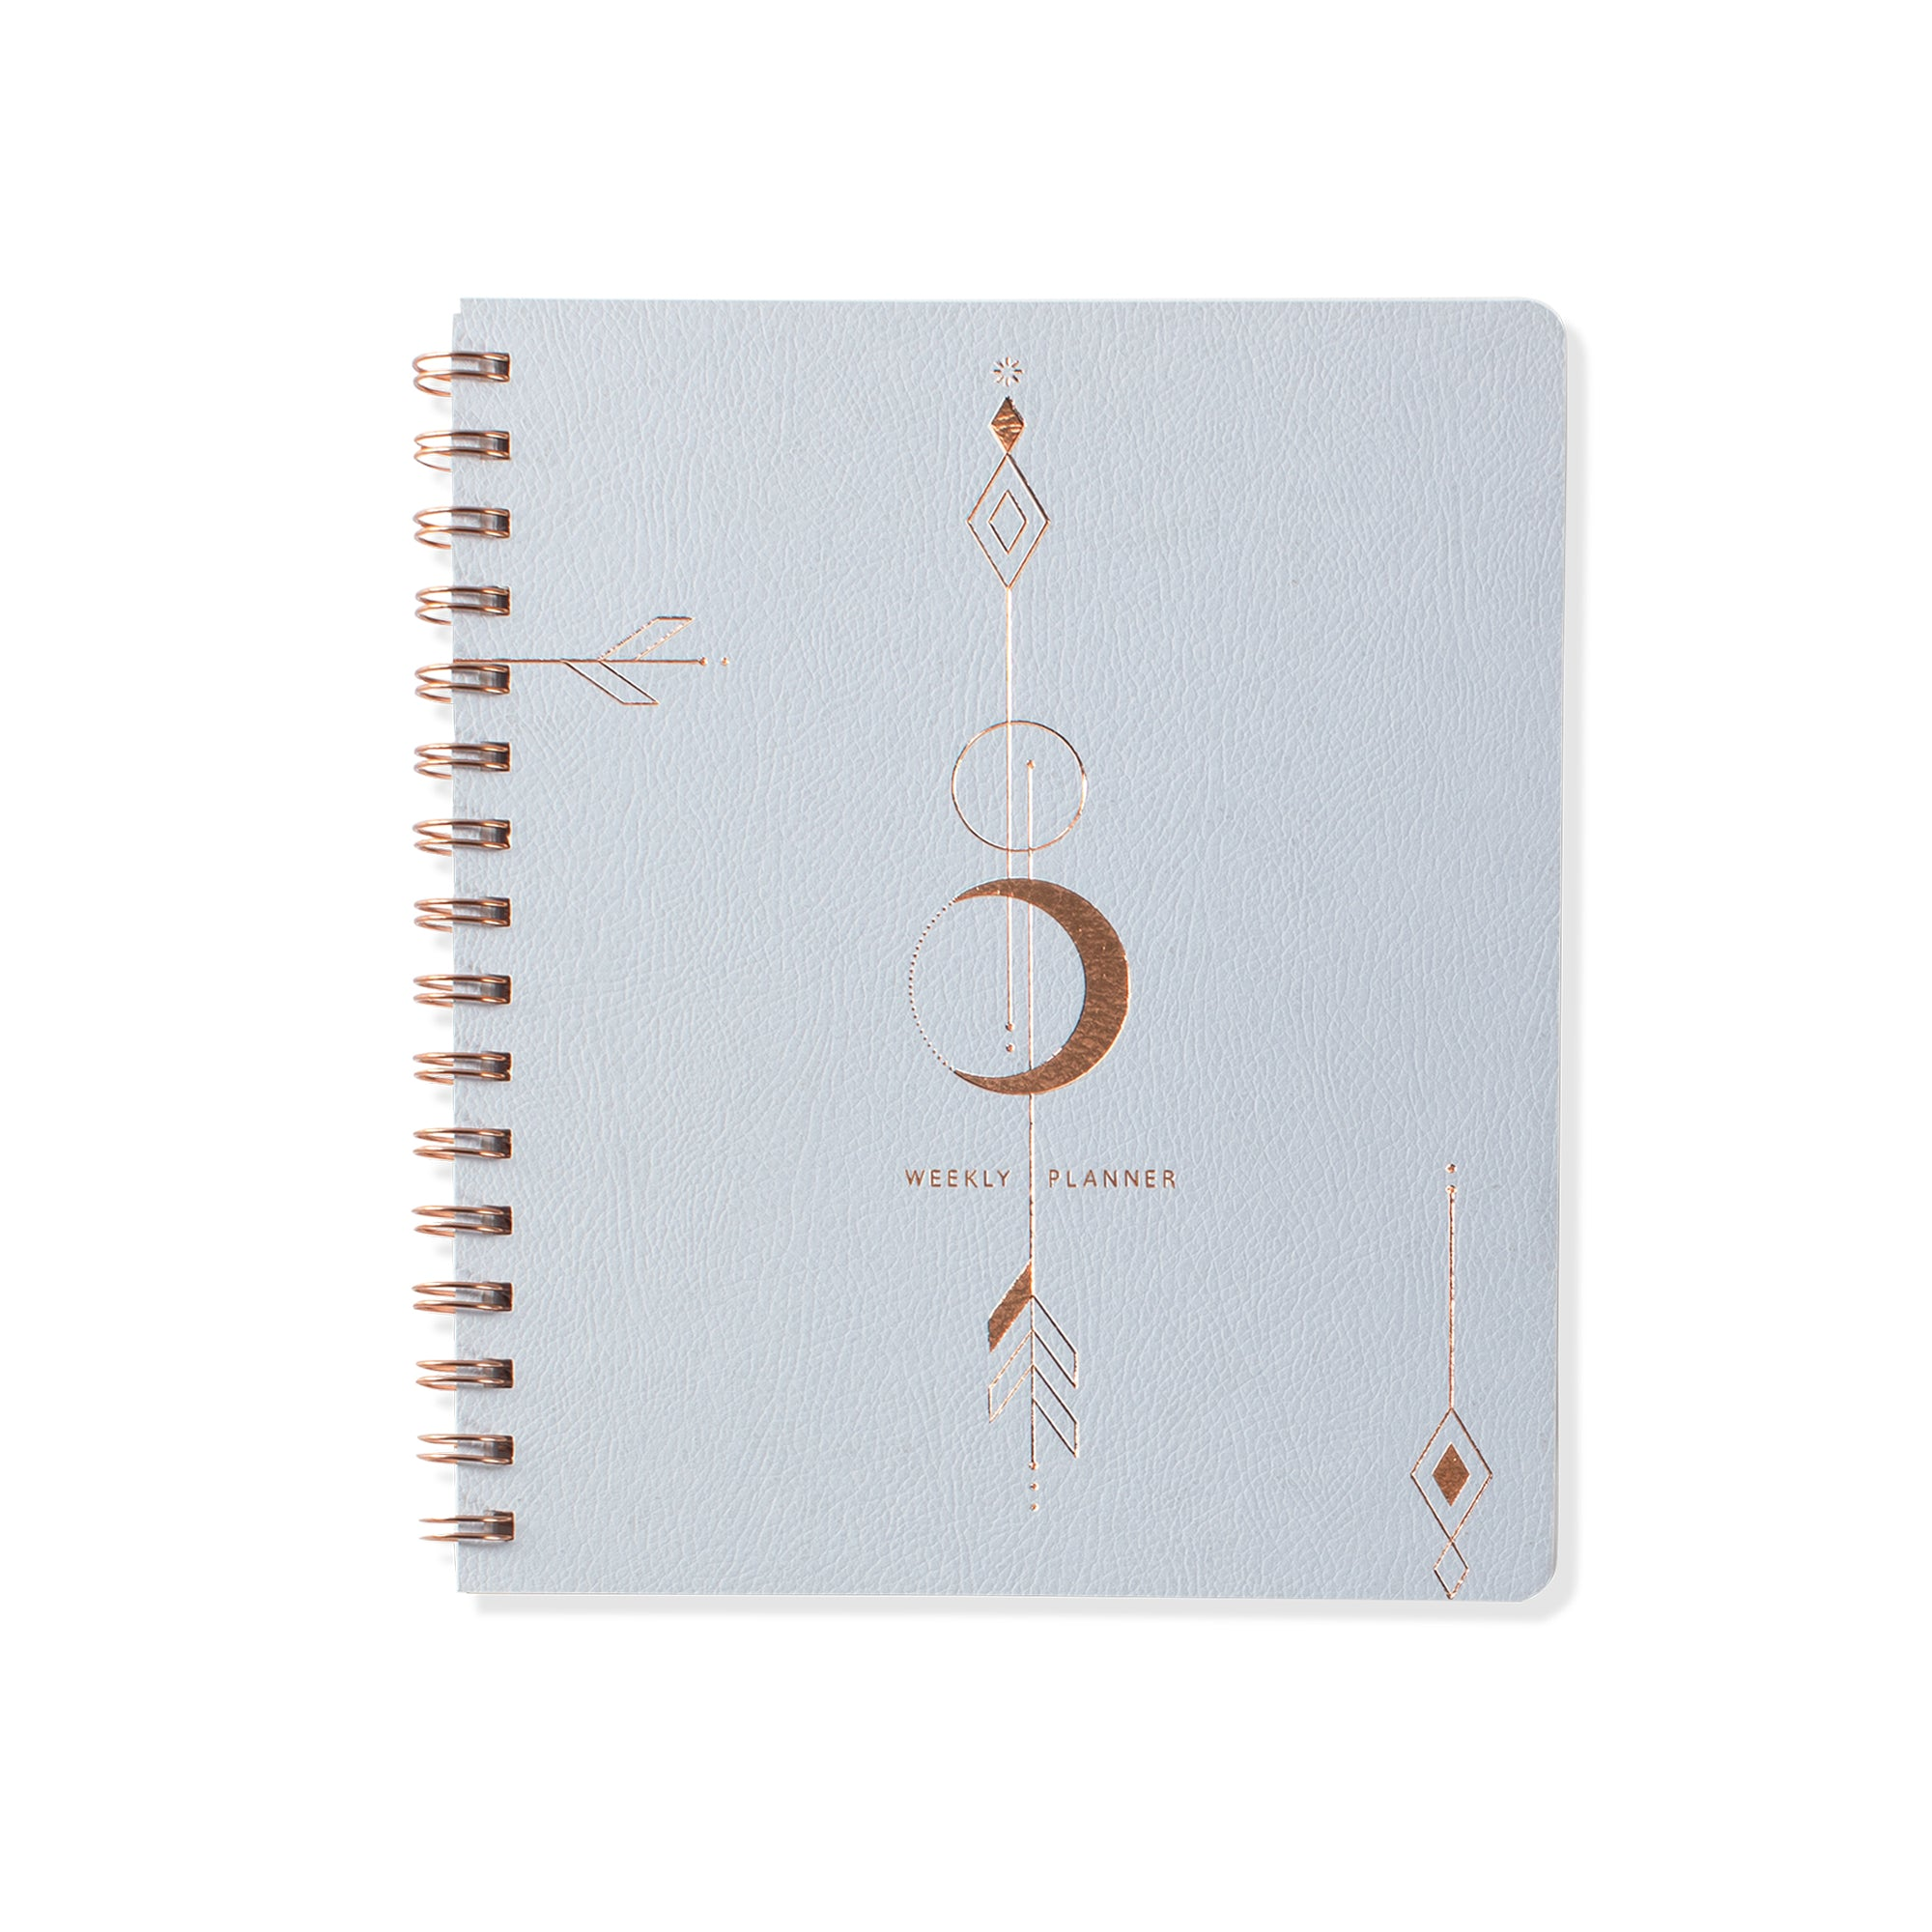 MOON ARROW MEDIUM NON-DATED WEEKLY PLANNER